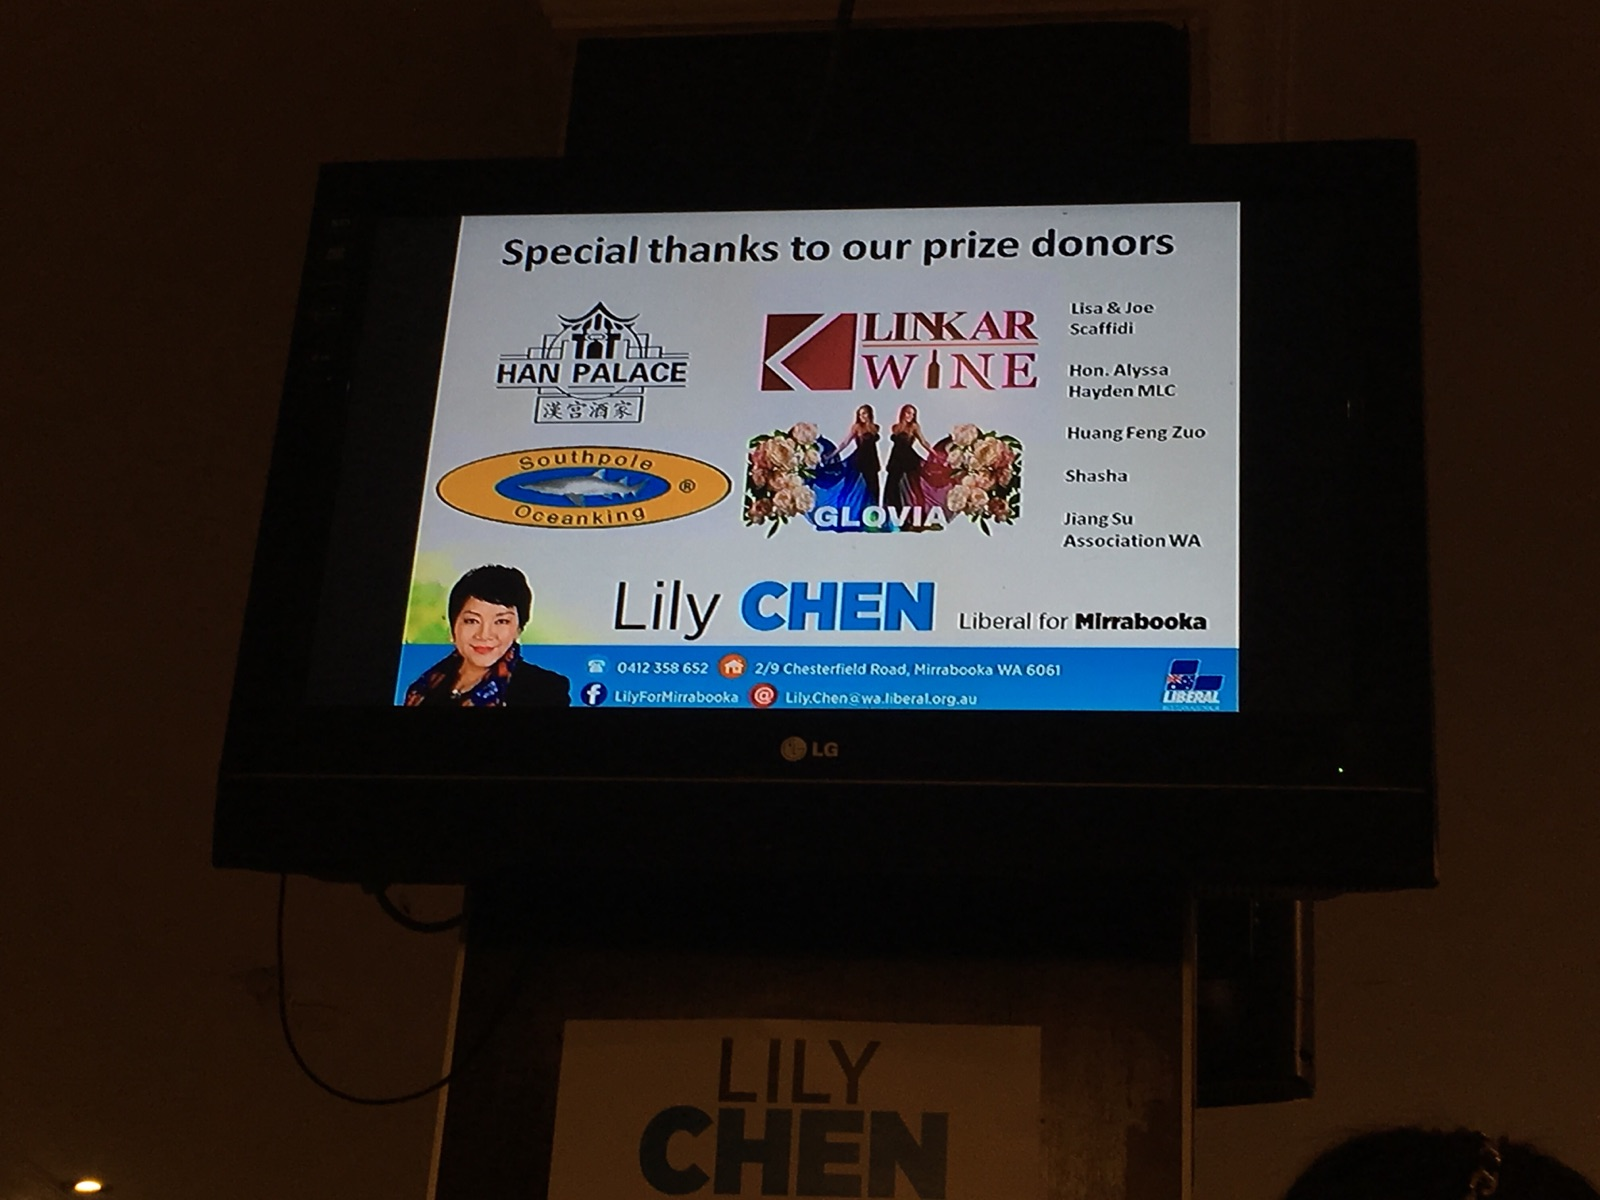 A screen at a Lily Chen campaign event, listing Perth Lord Mayor Lisa Scaffidi and husband Joe as prize donors.